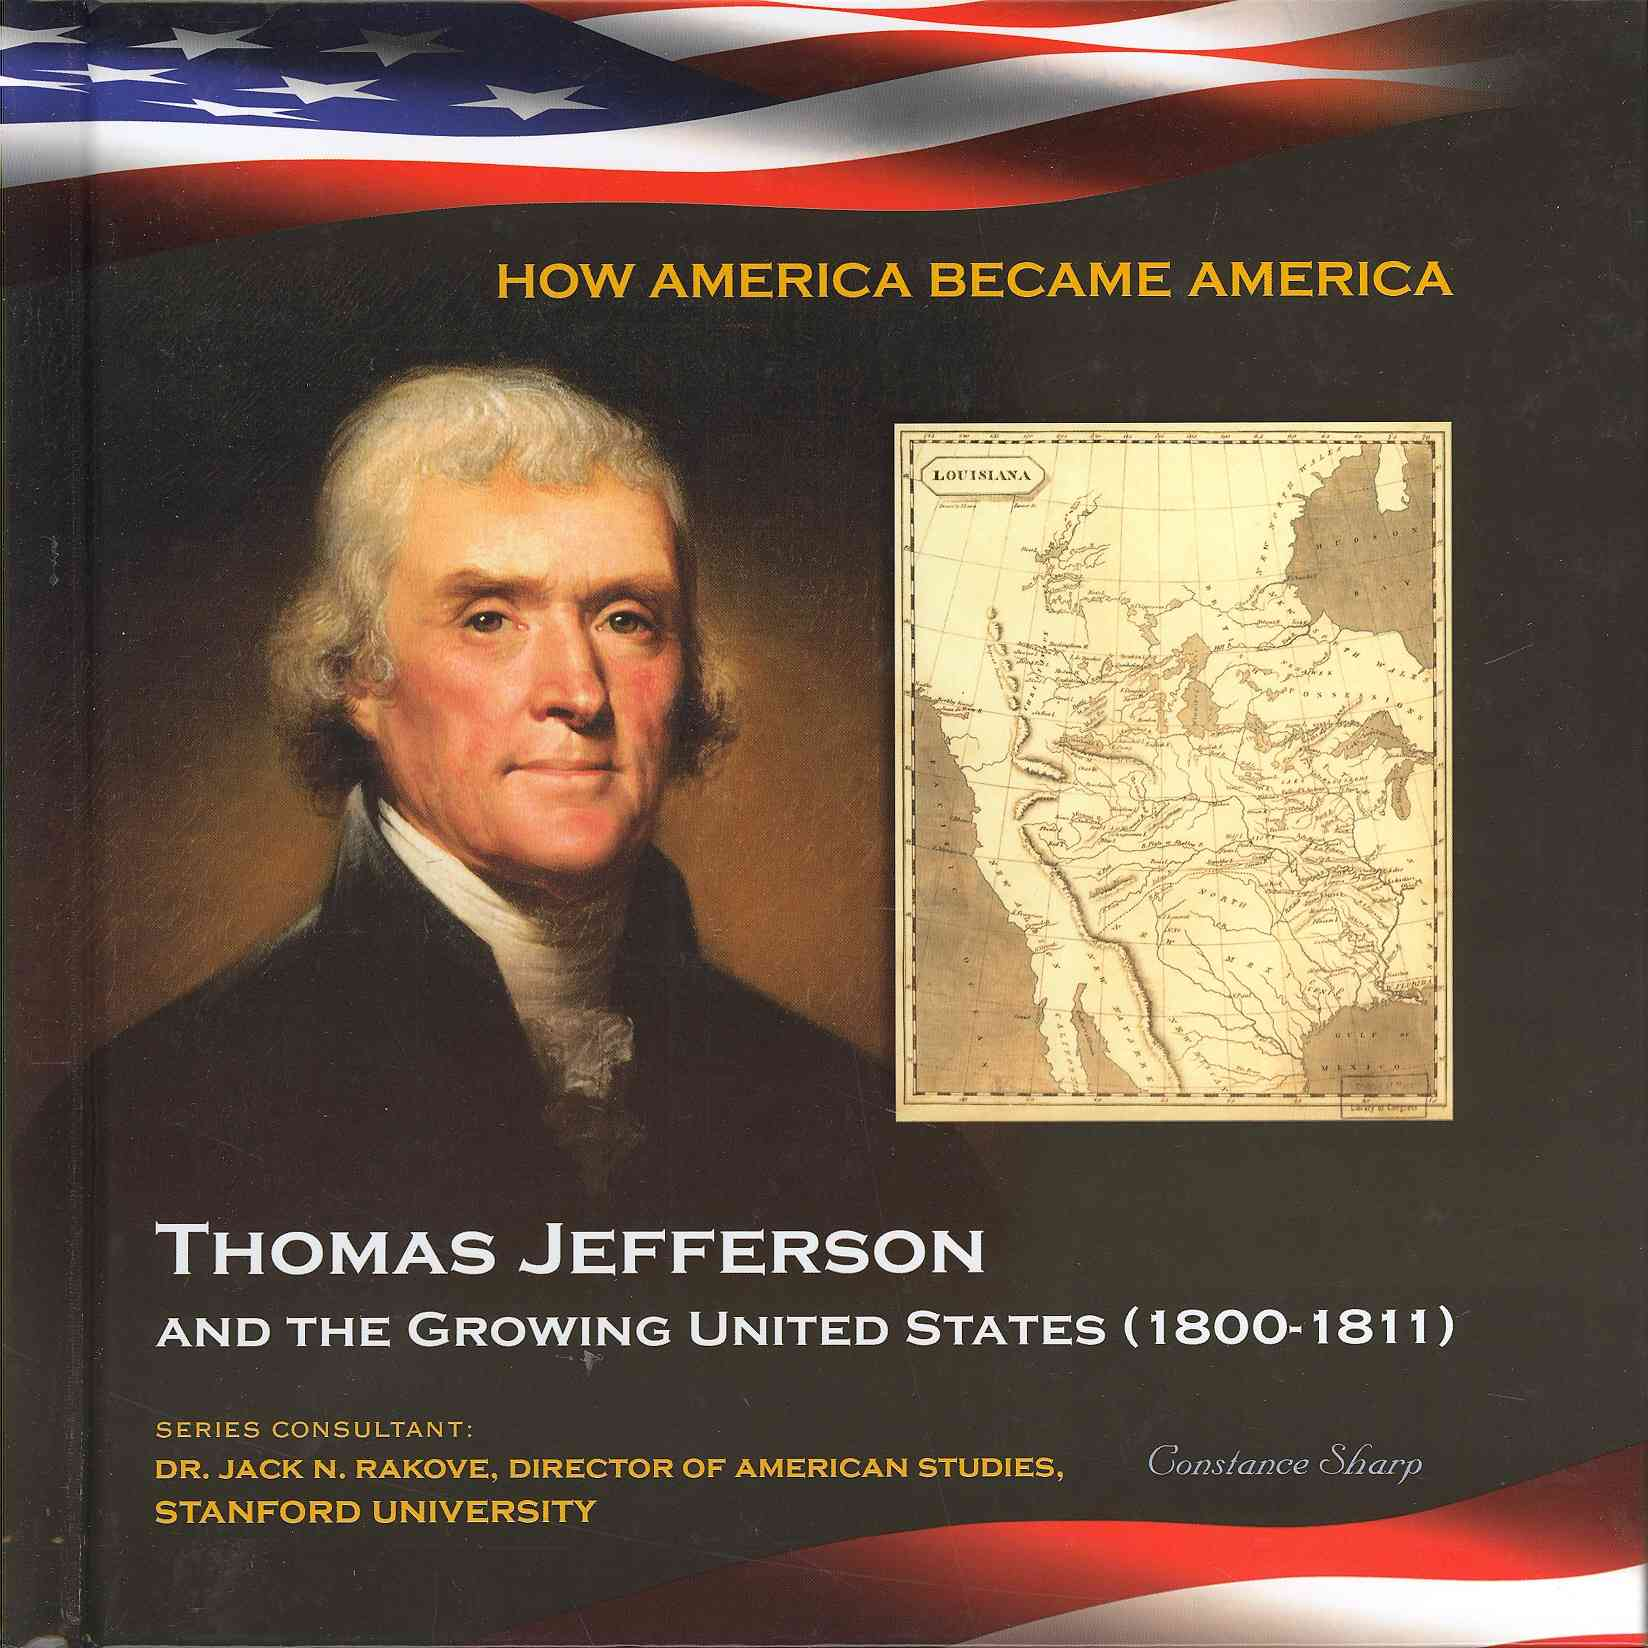 Thomas Jefferson and the Growing United States By Sharp, Constance